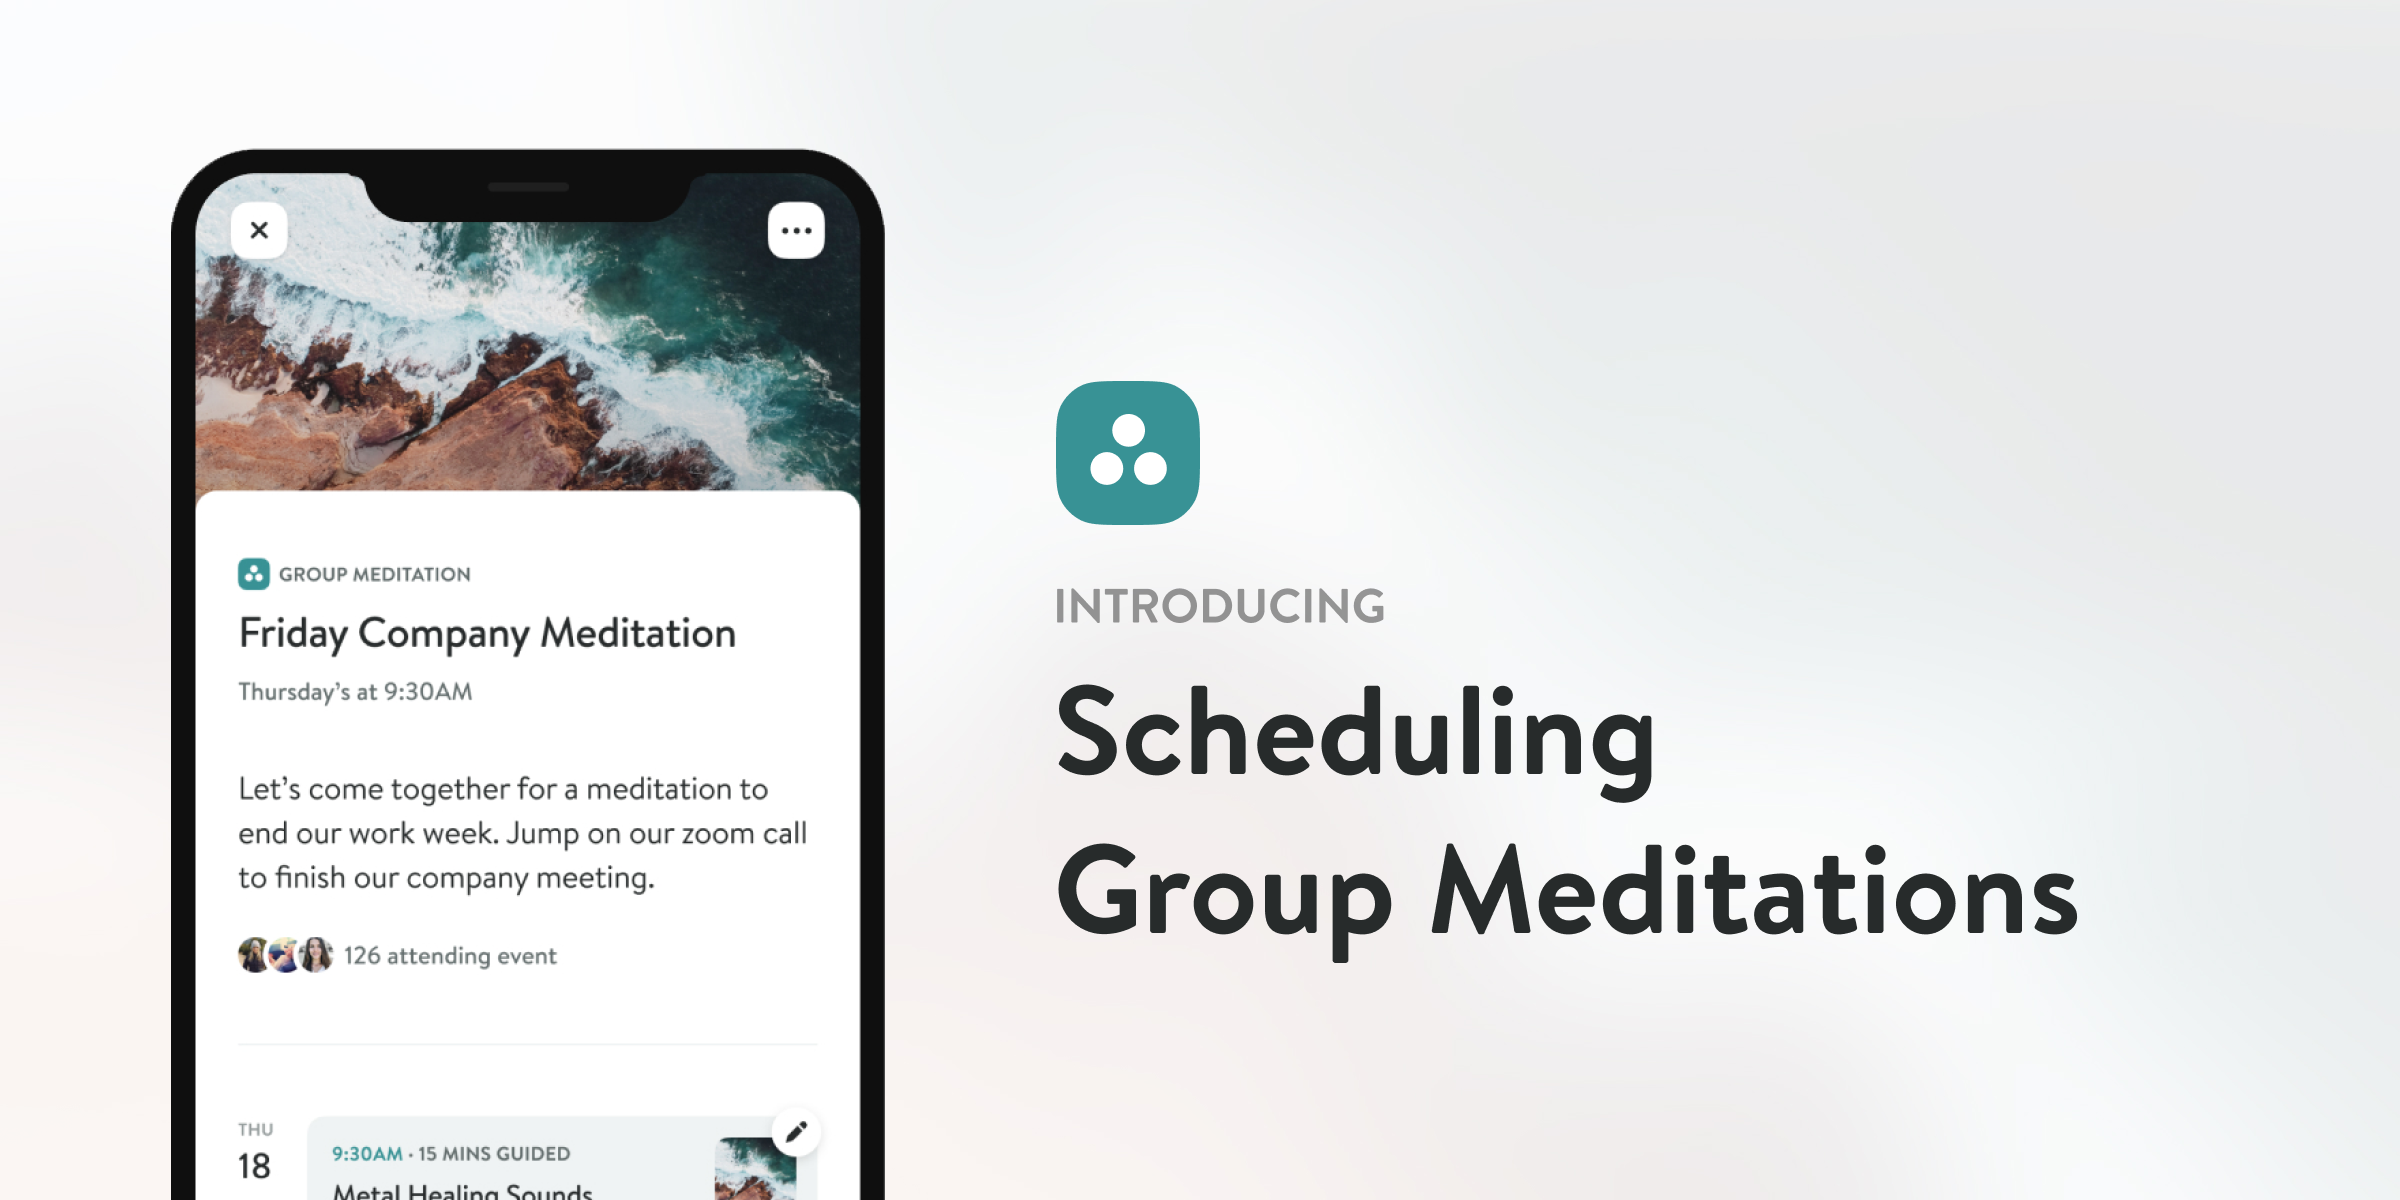 Scheduling Group Meditations